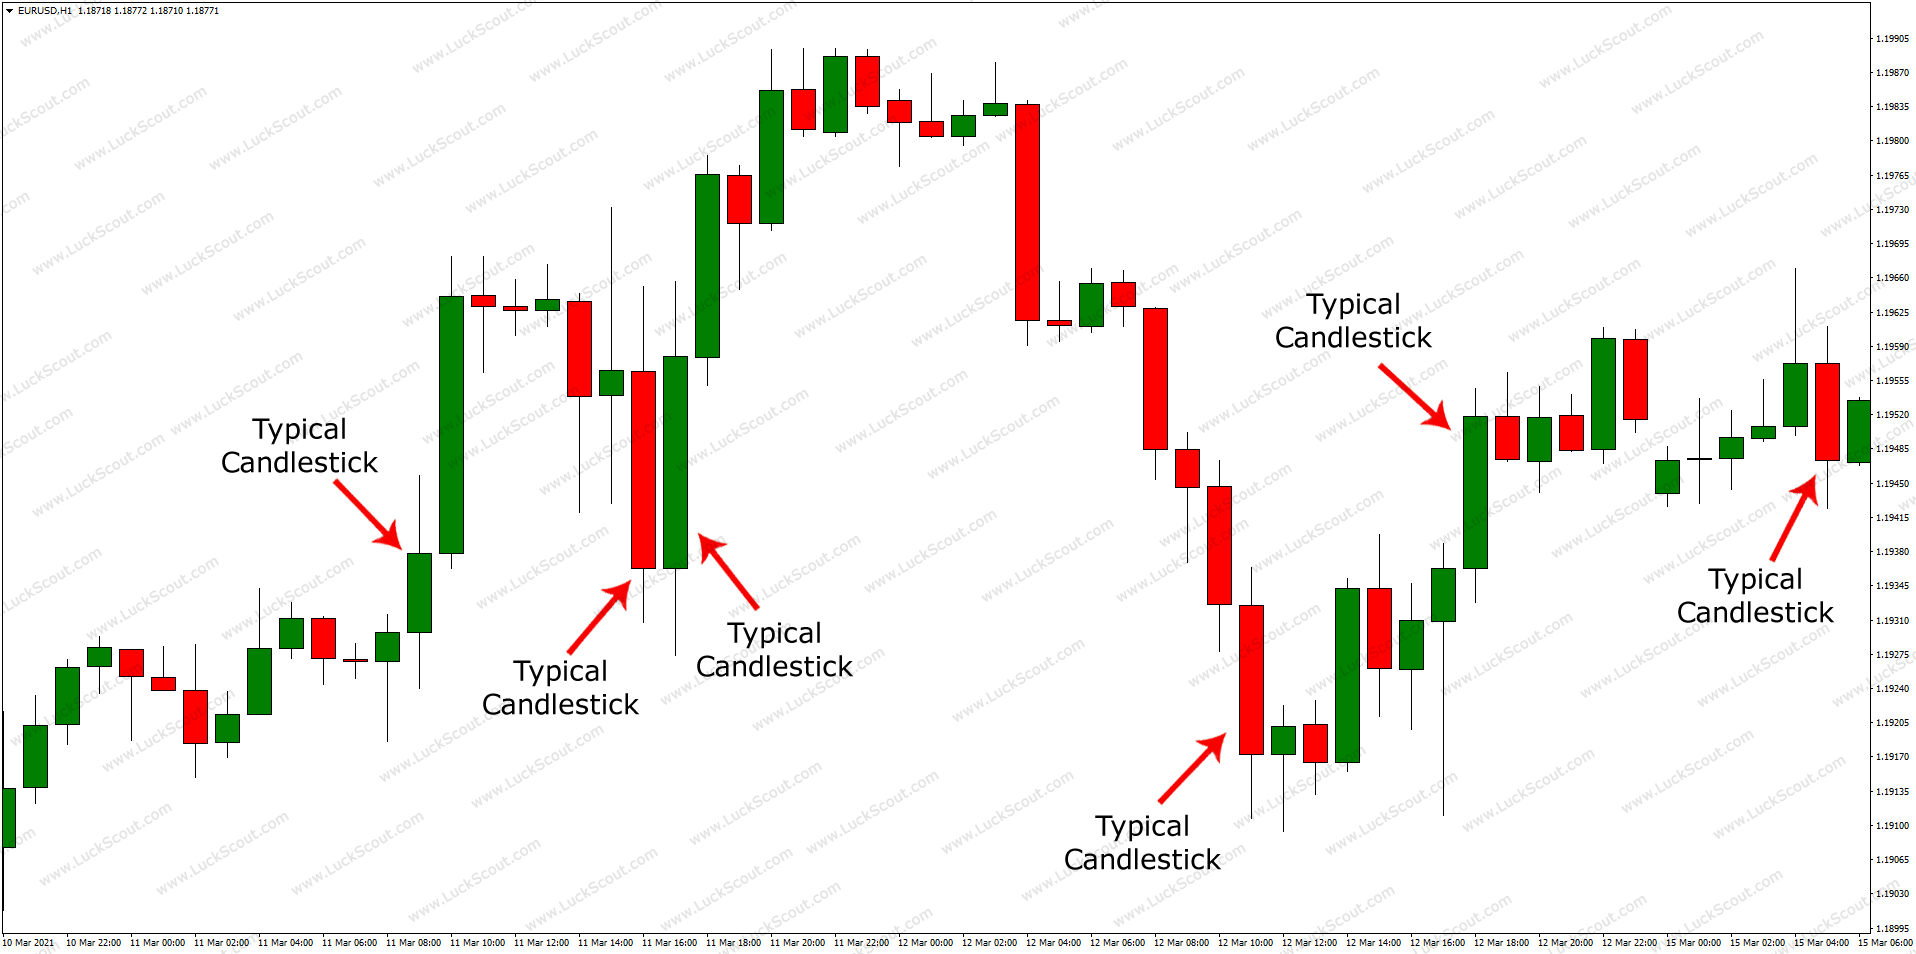 Typical Candlesticks